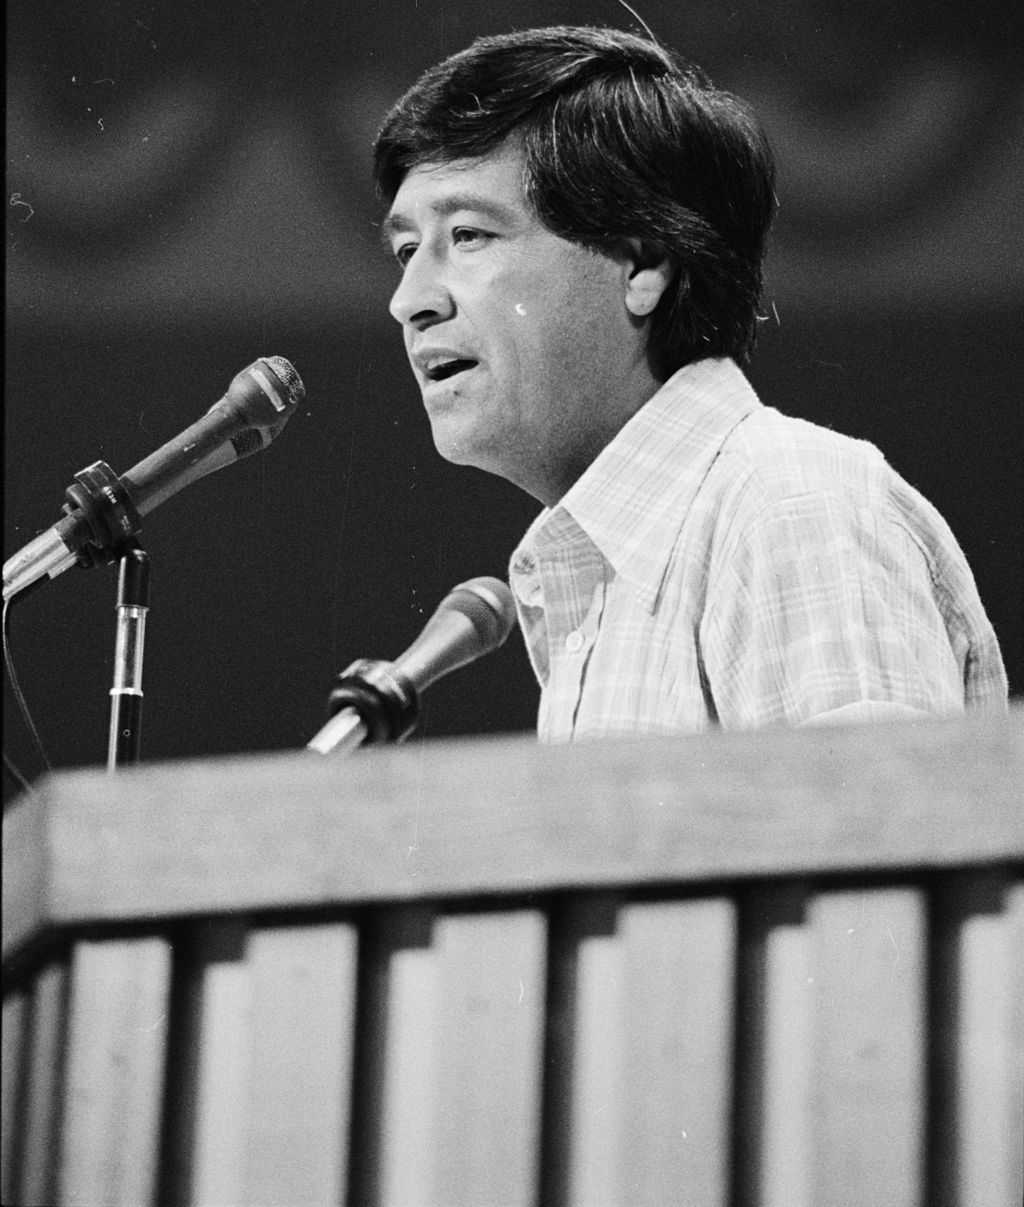 Democratic Convention in New York City, July 14, 1976. Cesar Chavez at podium, nominating Gov. Brown.